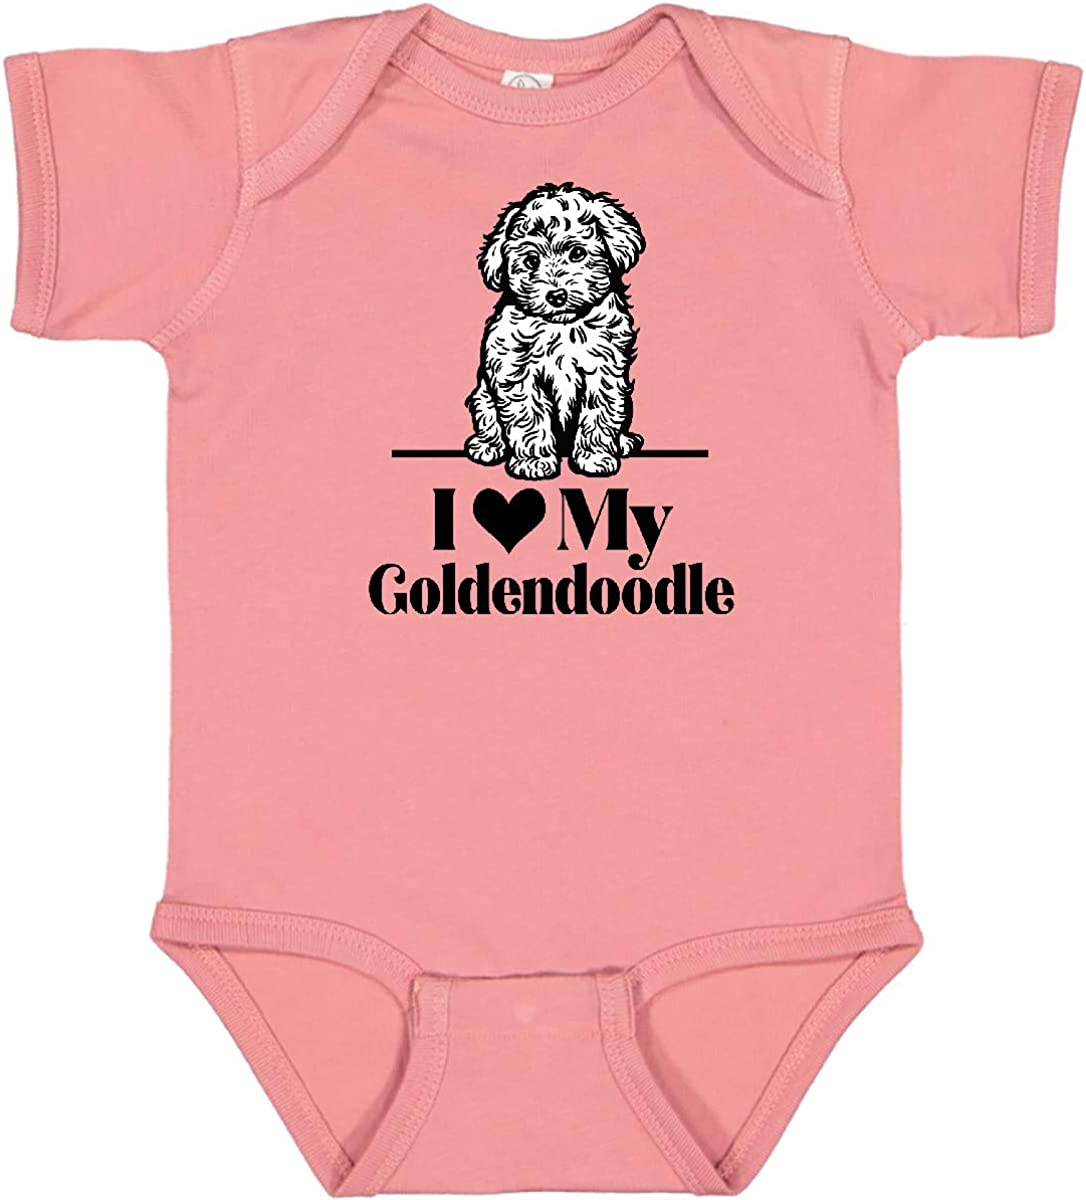 inktastic National uniform free shipping I Love My Creeper Infant Goldendoodle Ranking TOP4 Dog